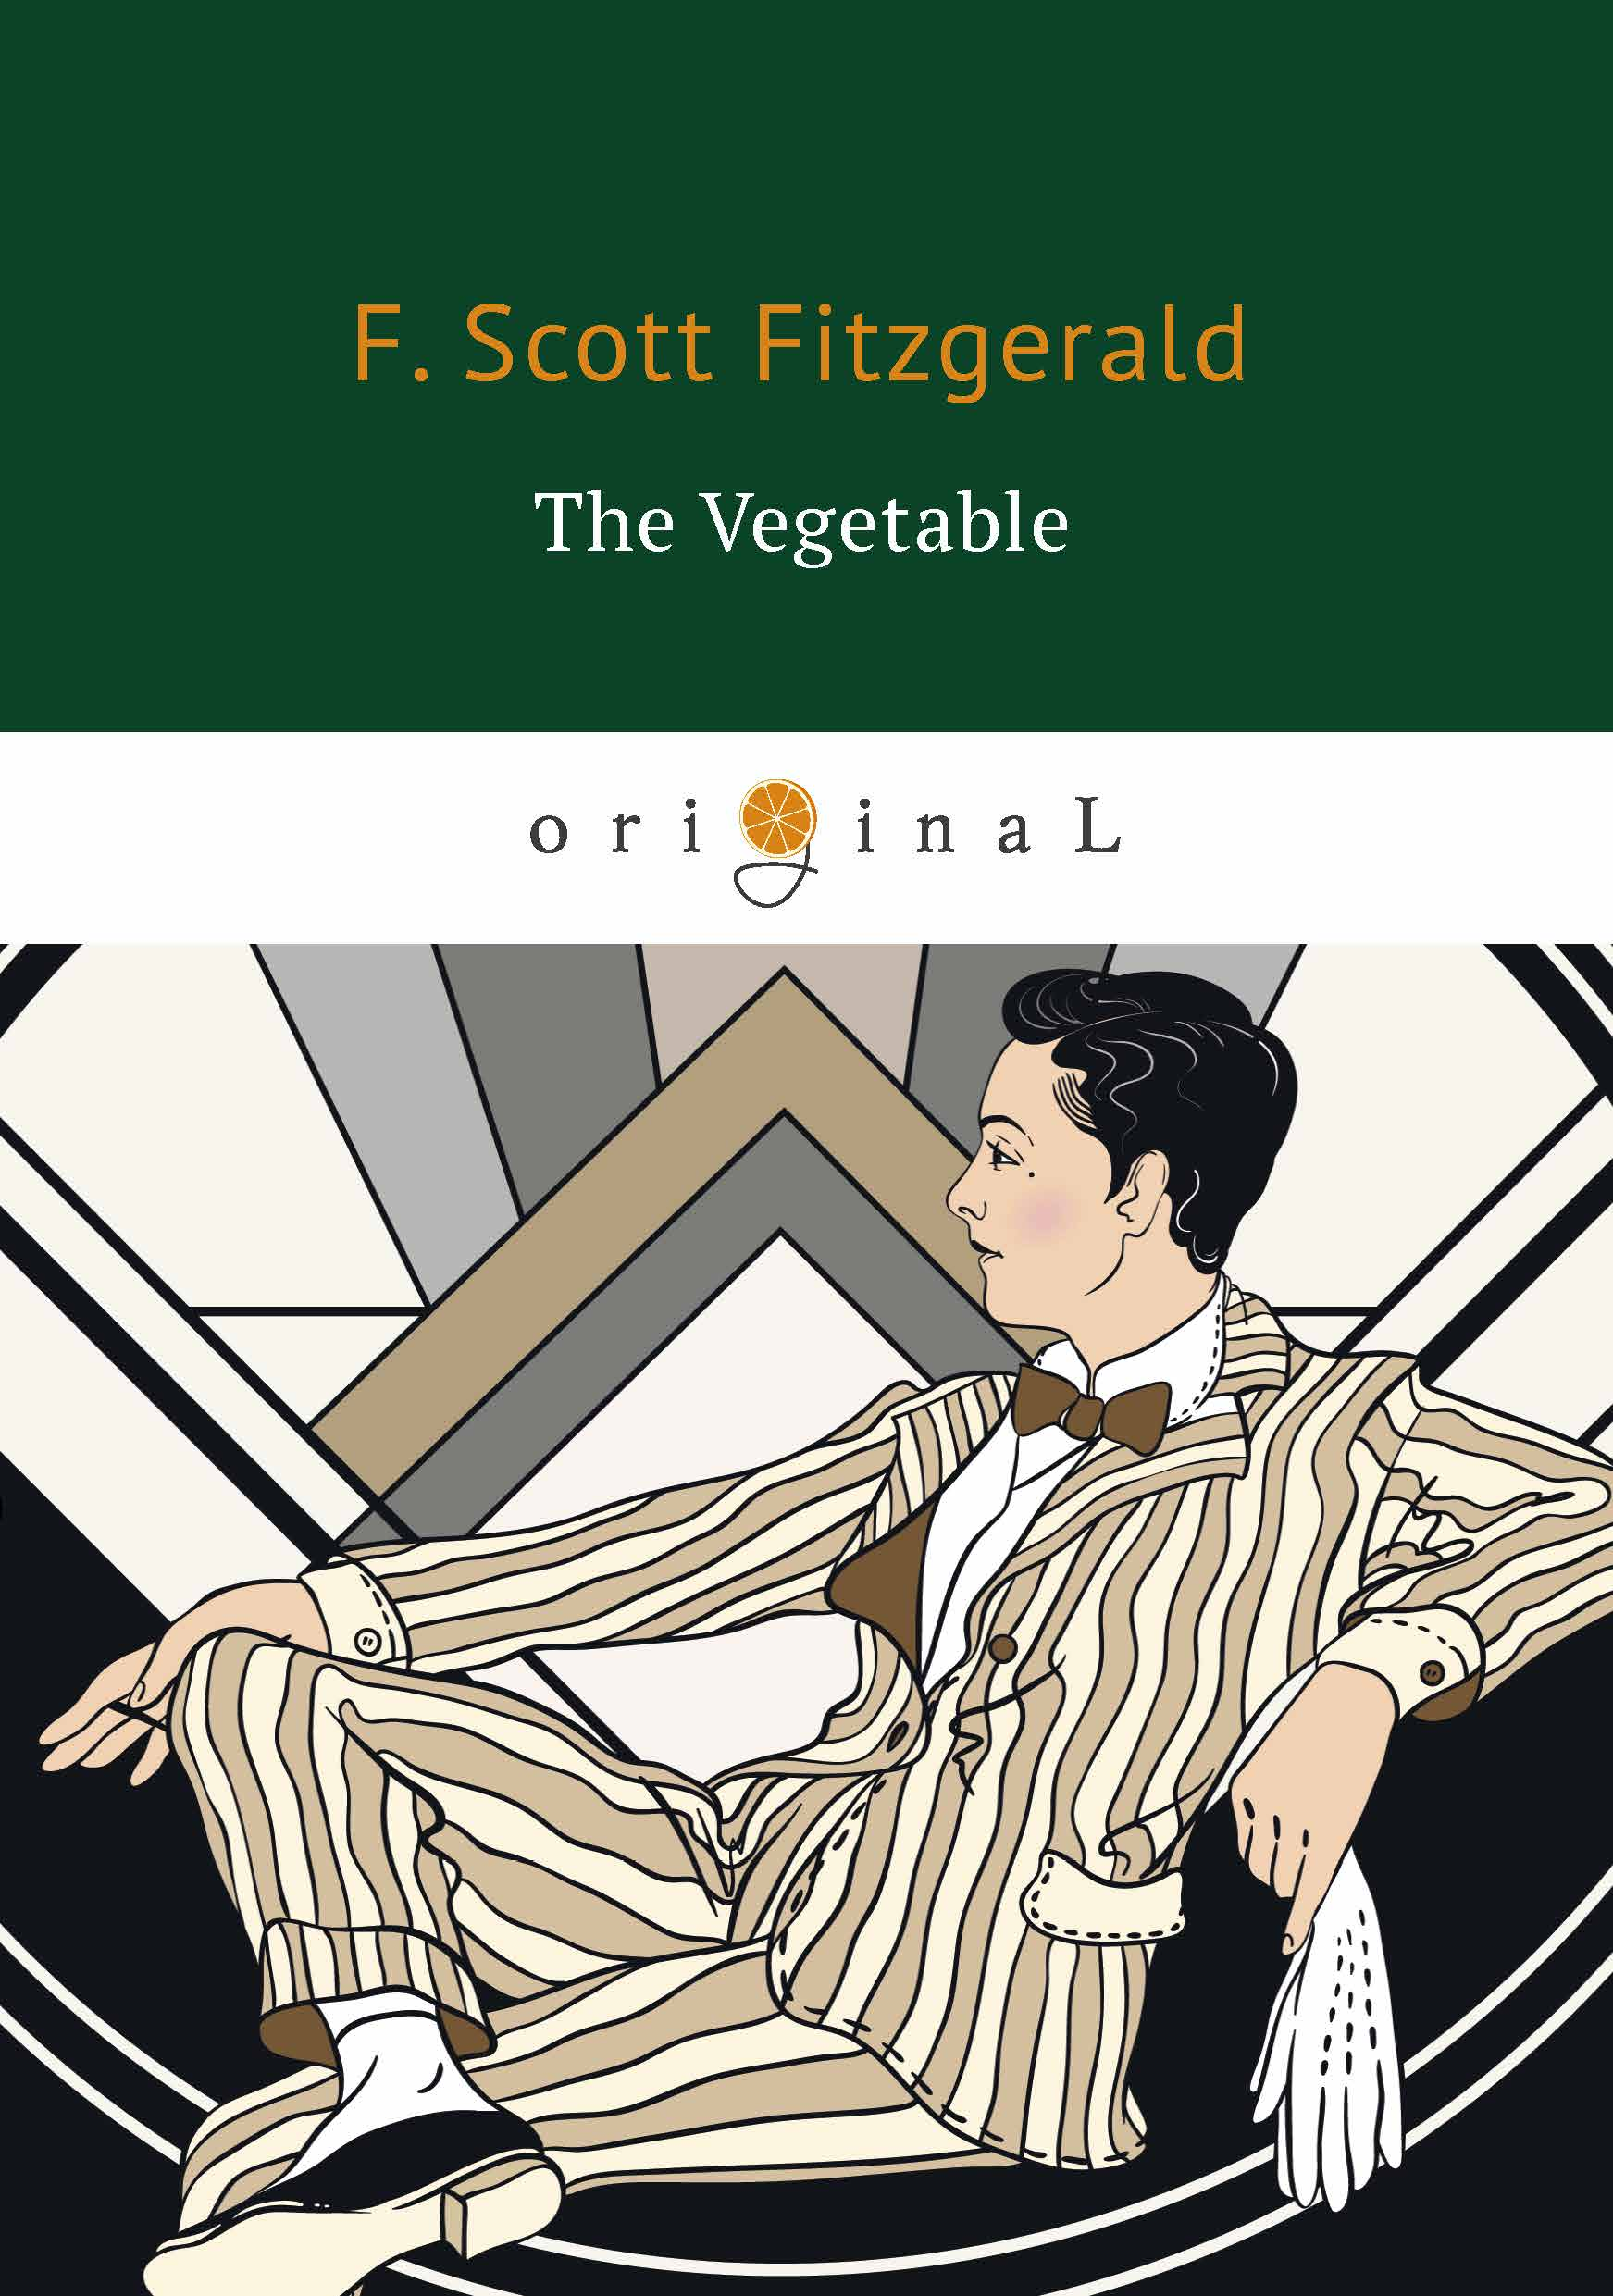 F. Scott Fitzgerald The Vegetable